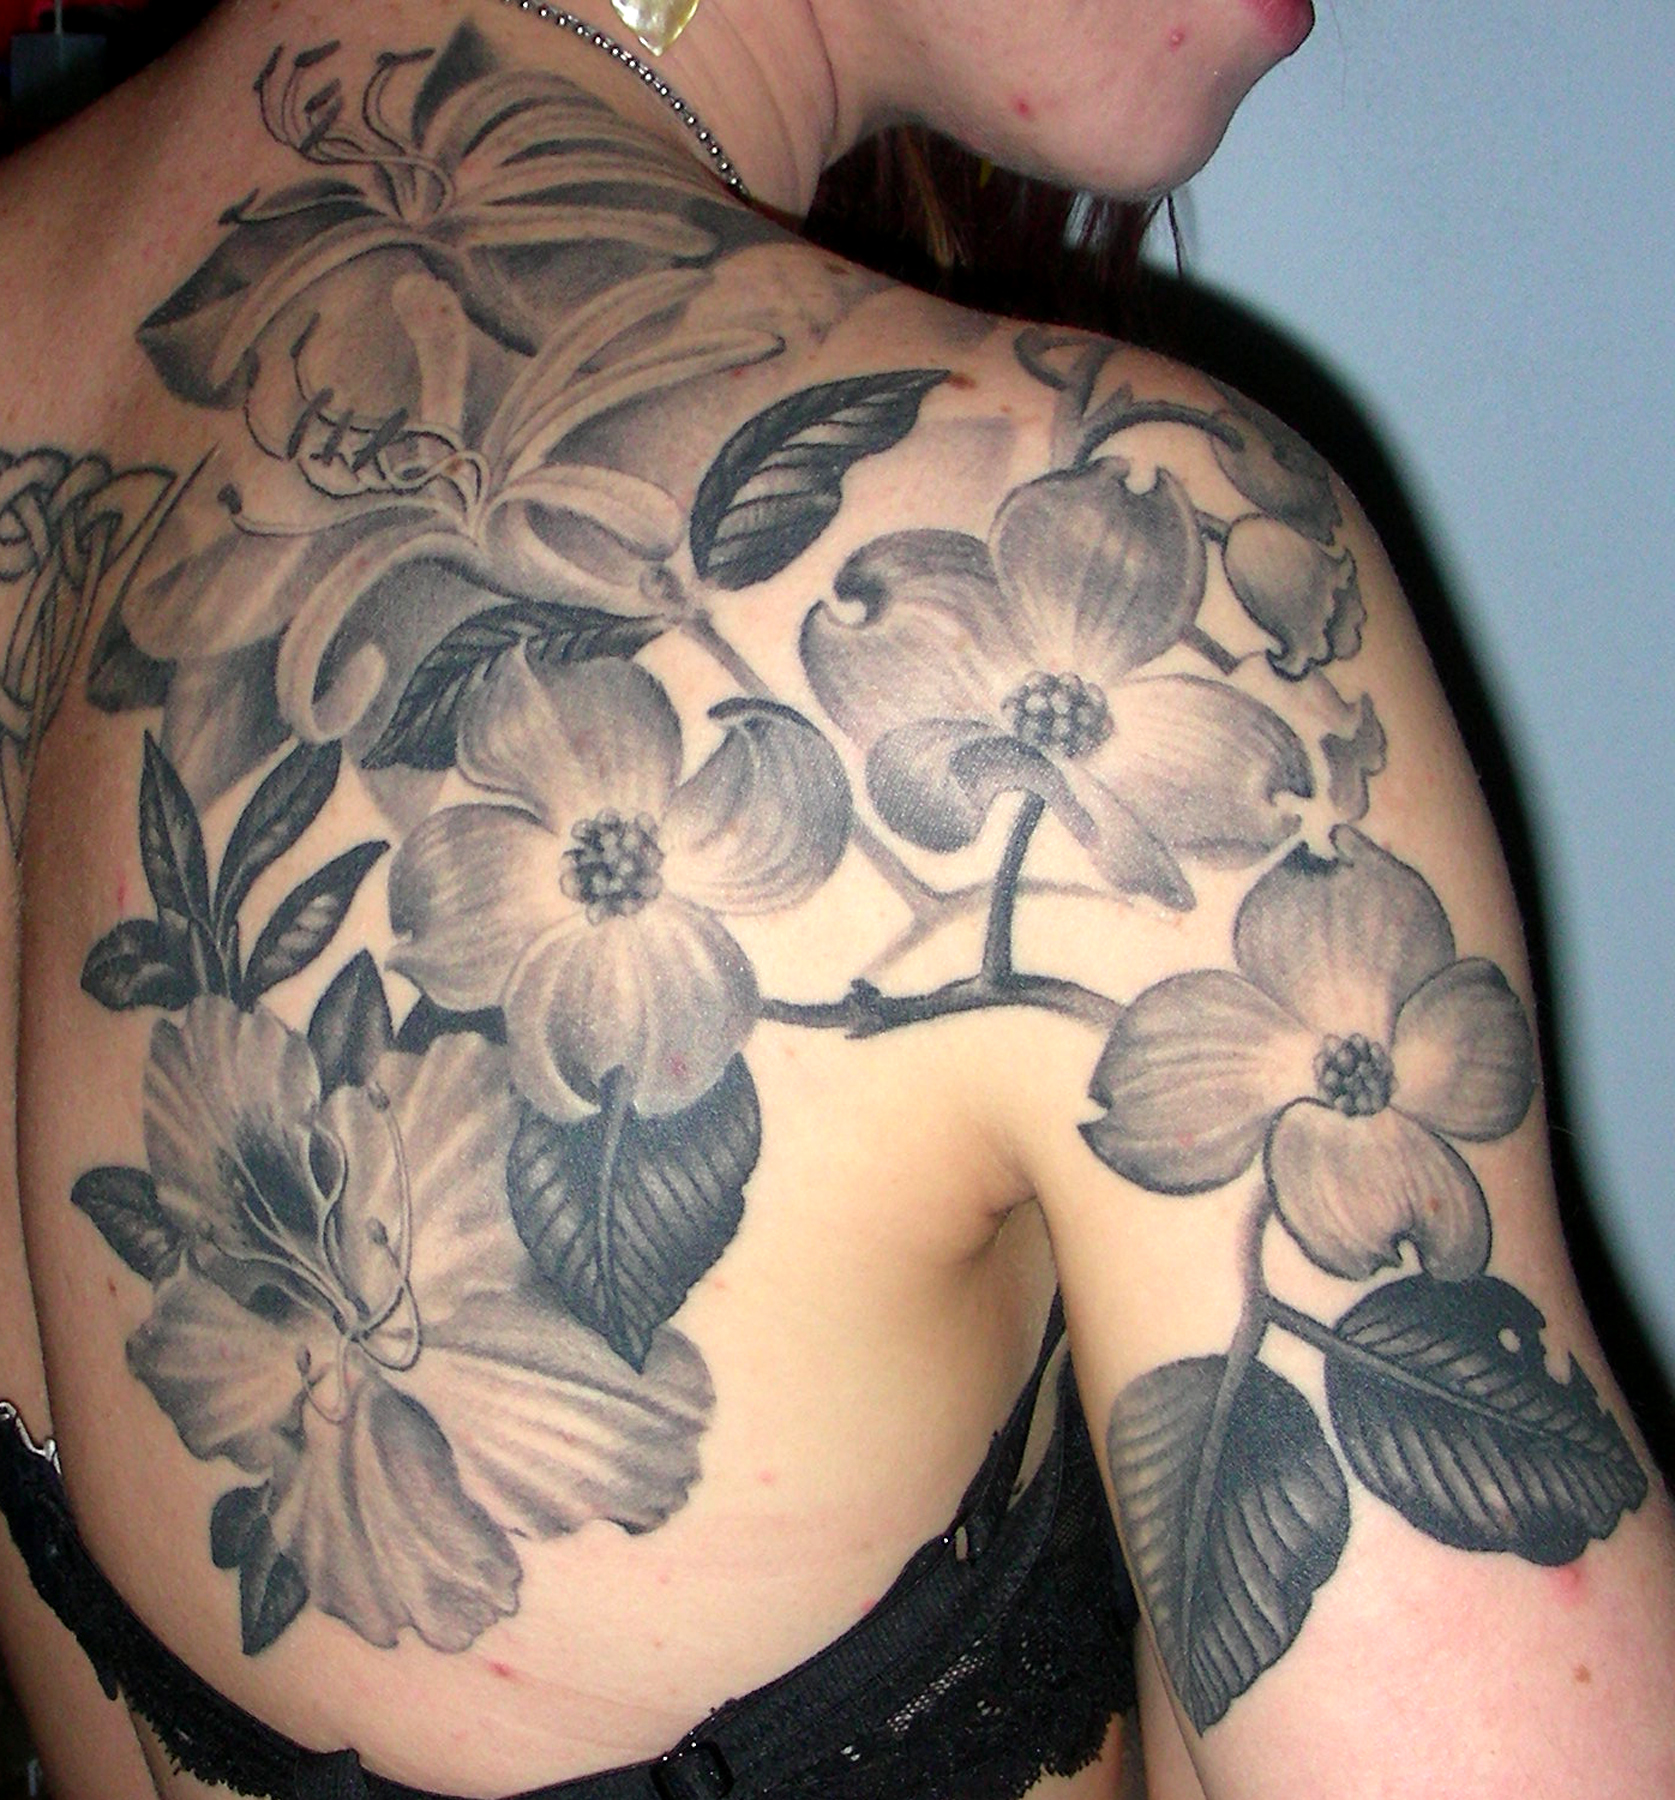 Tattoo Ideas Images: Flower Tattoos Designs, Ideas And Meaning